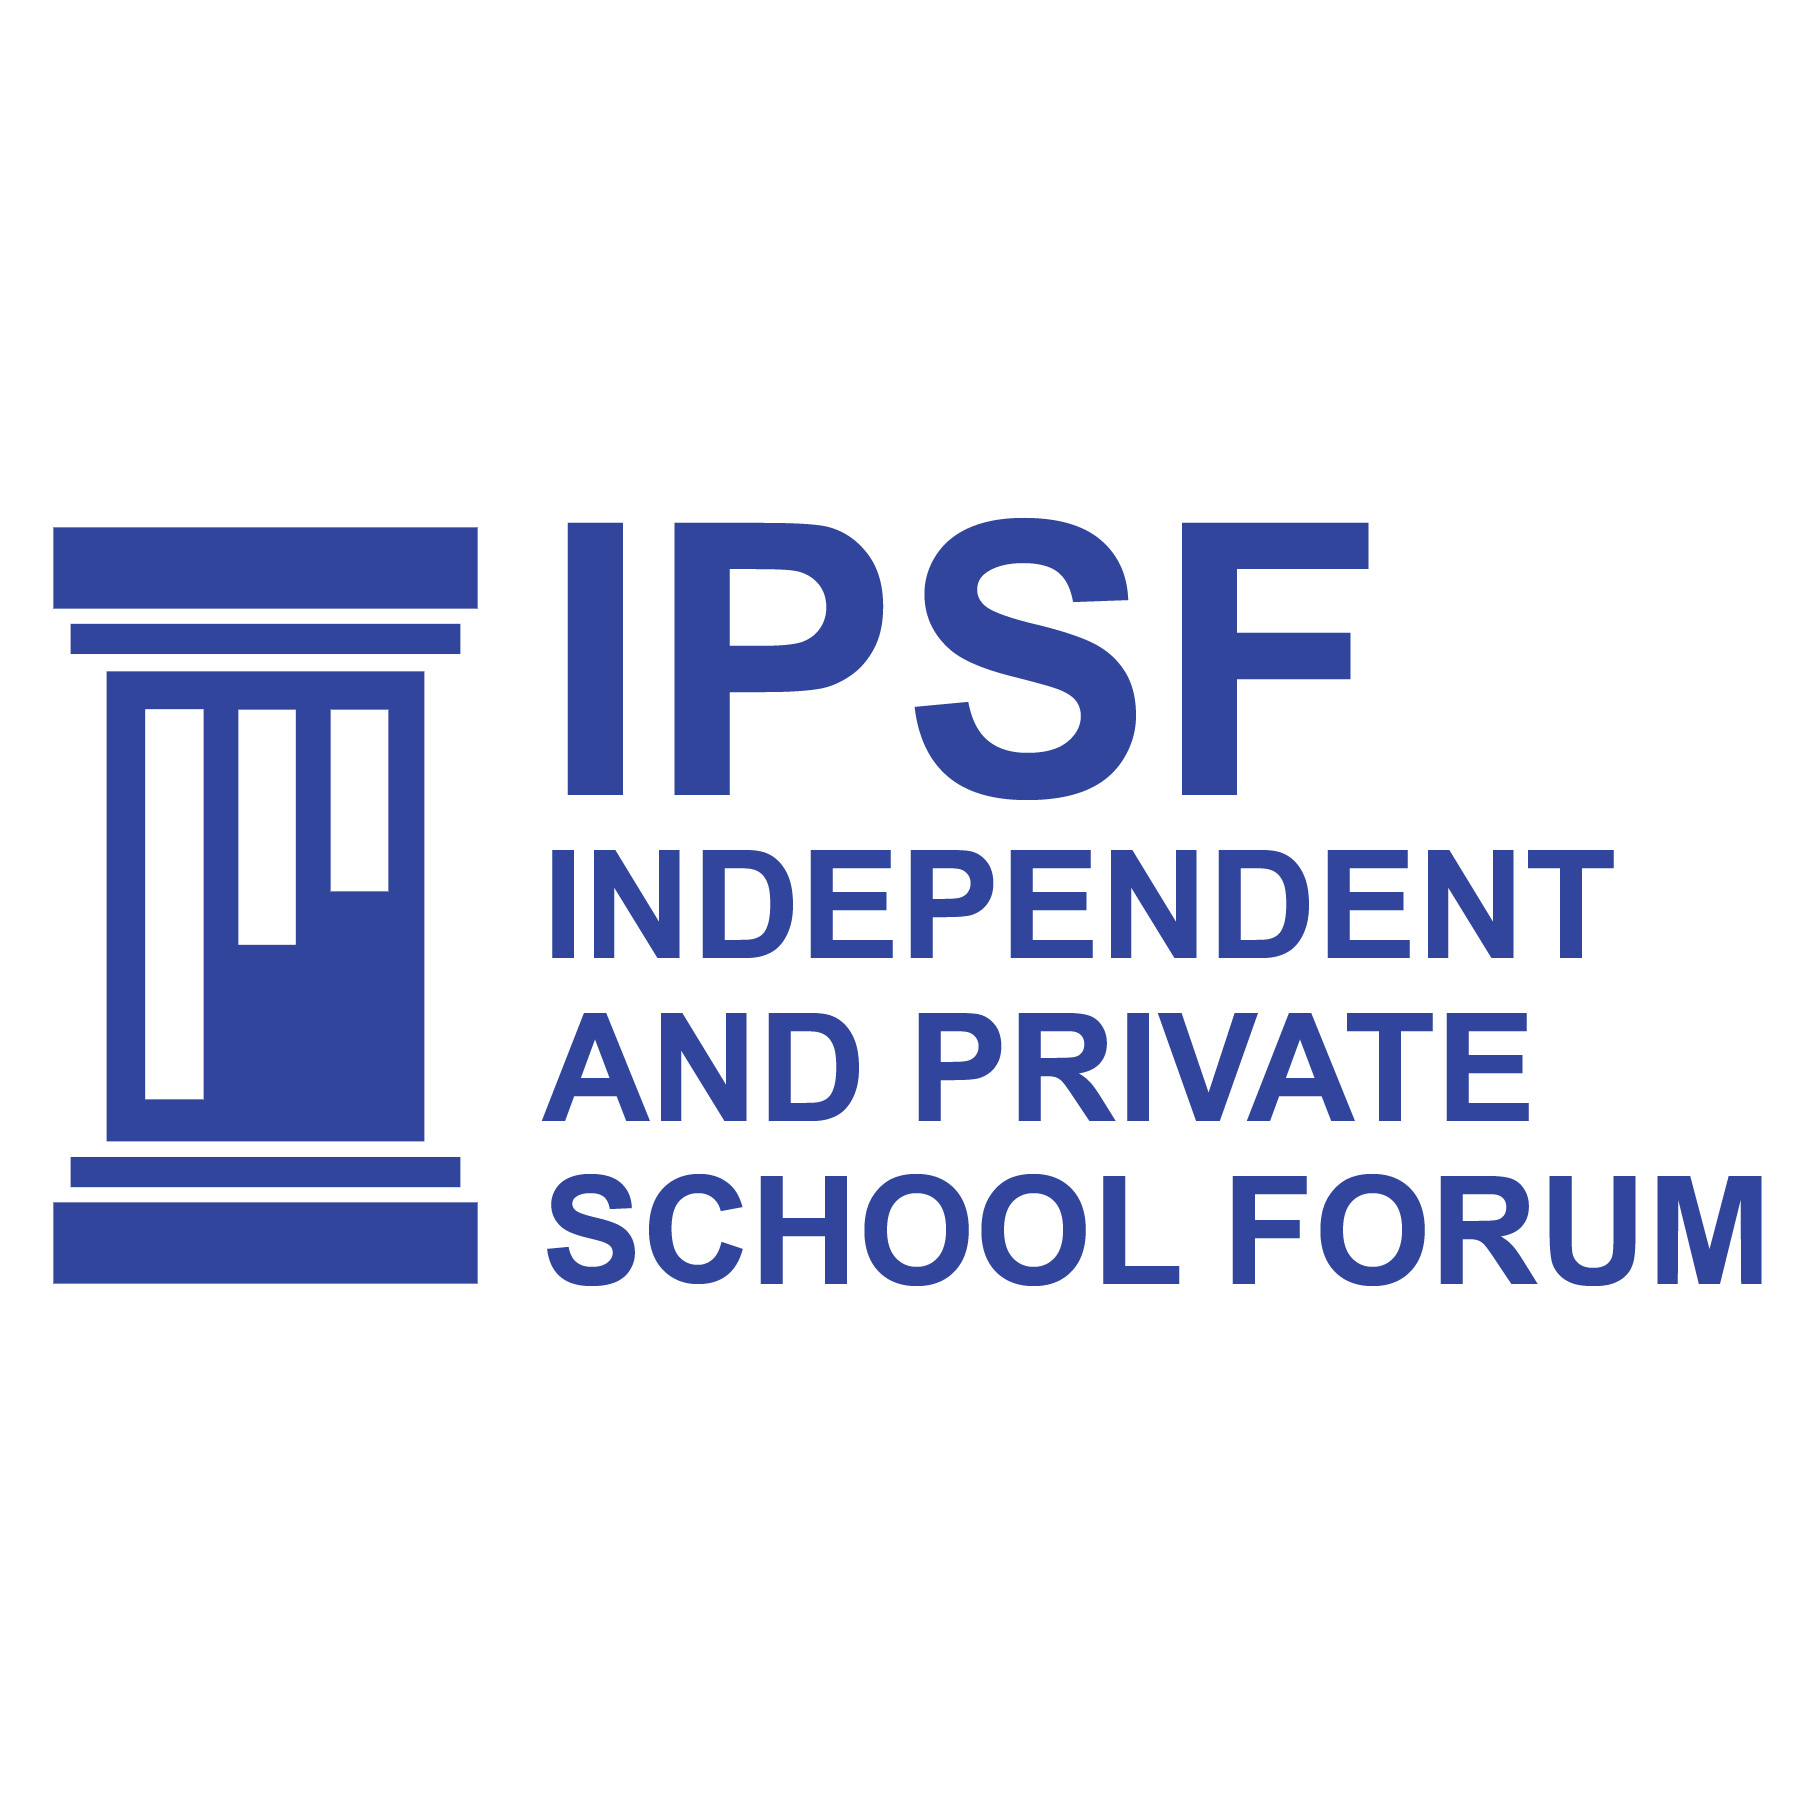 The Independent and Private School Forum (IPSF) Associations